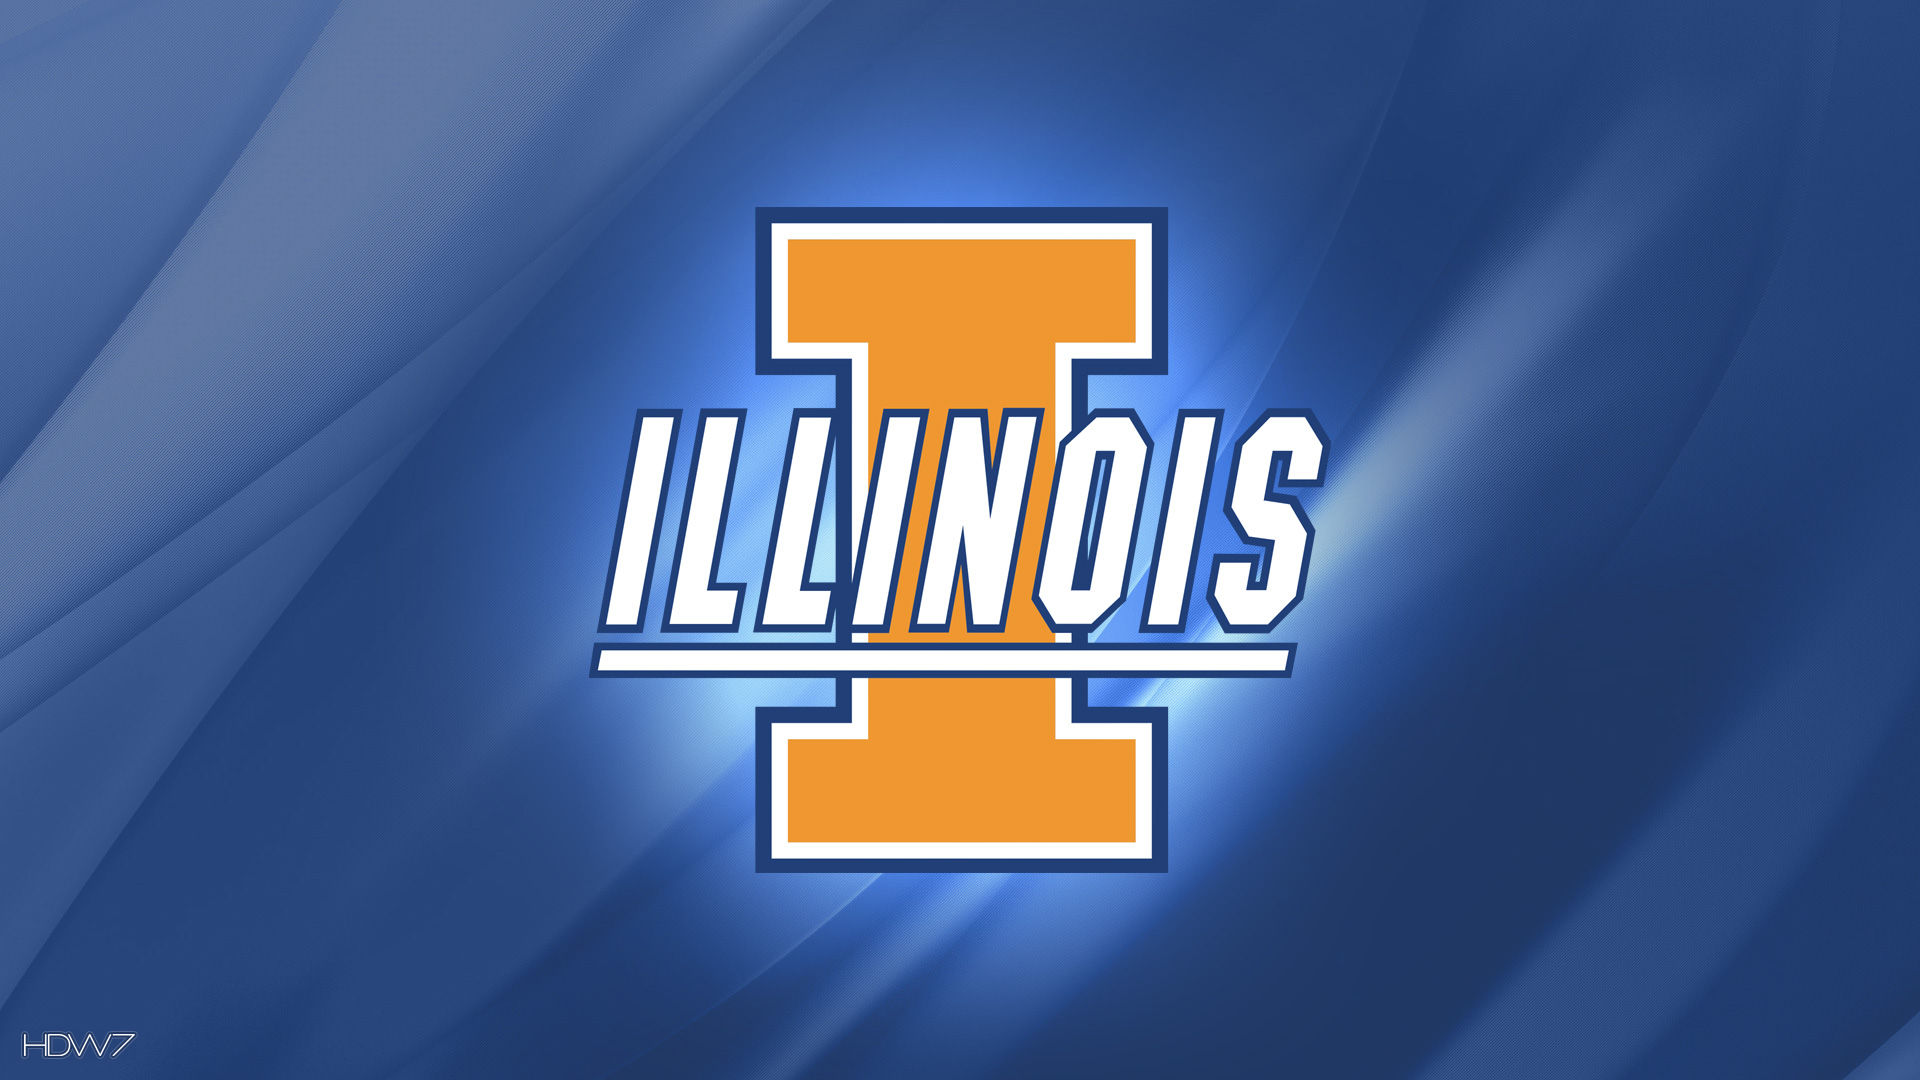 Best 54 University of Illinois Wallpaper on HipWallpaper 1920x1080